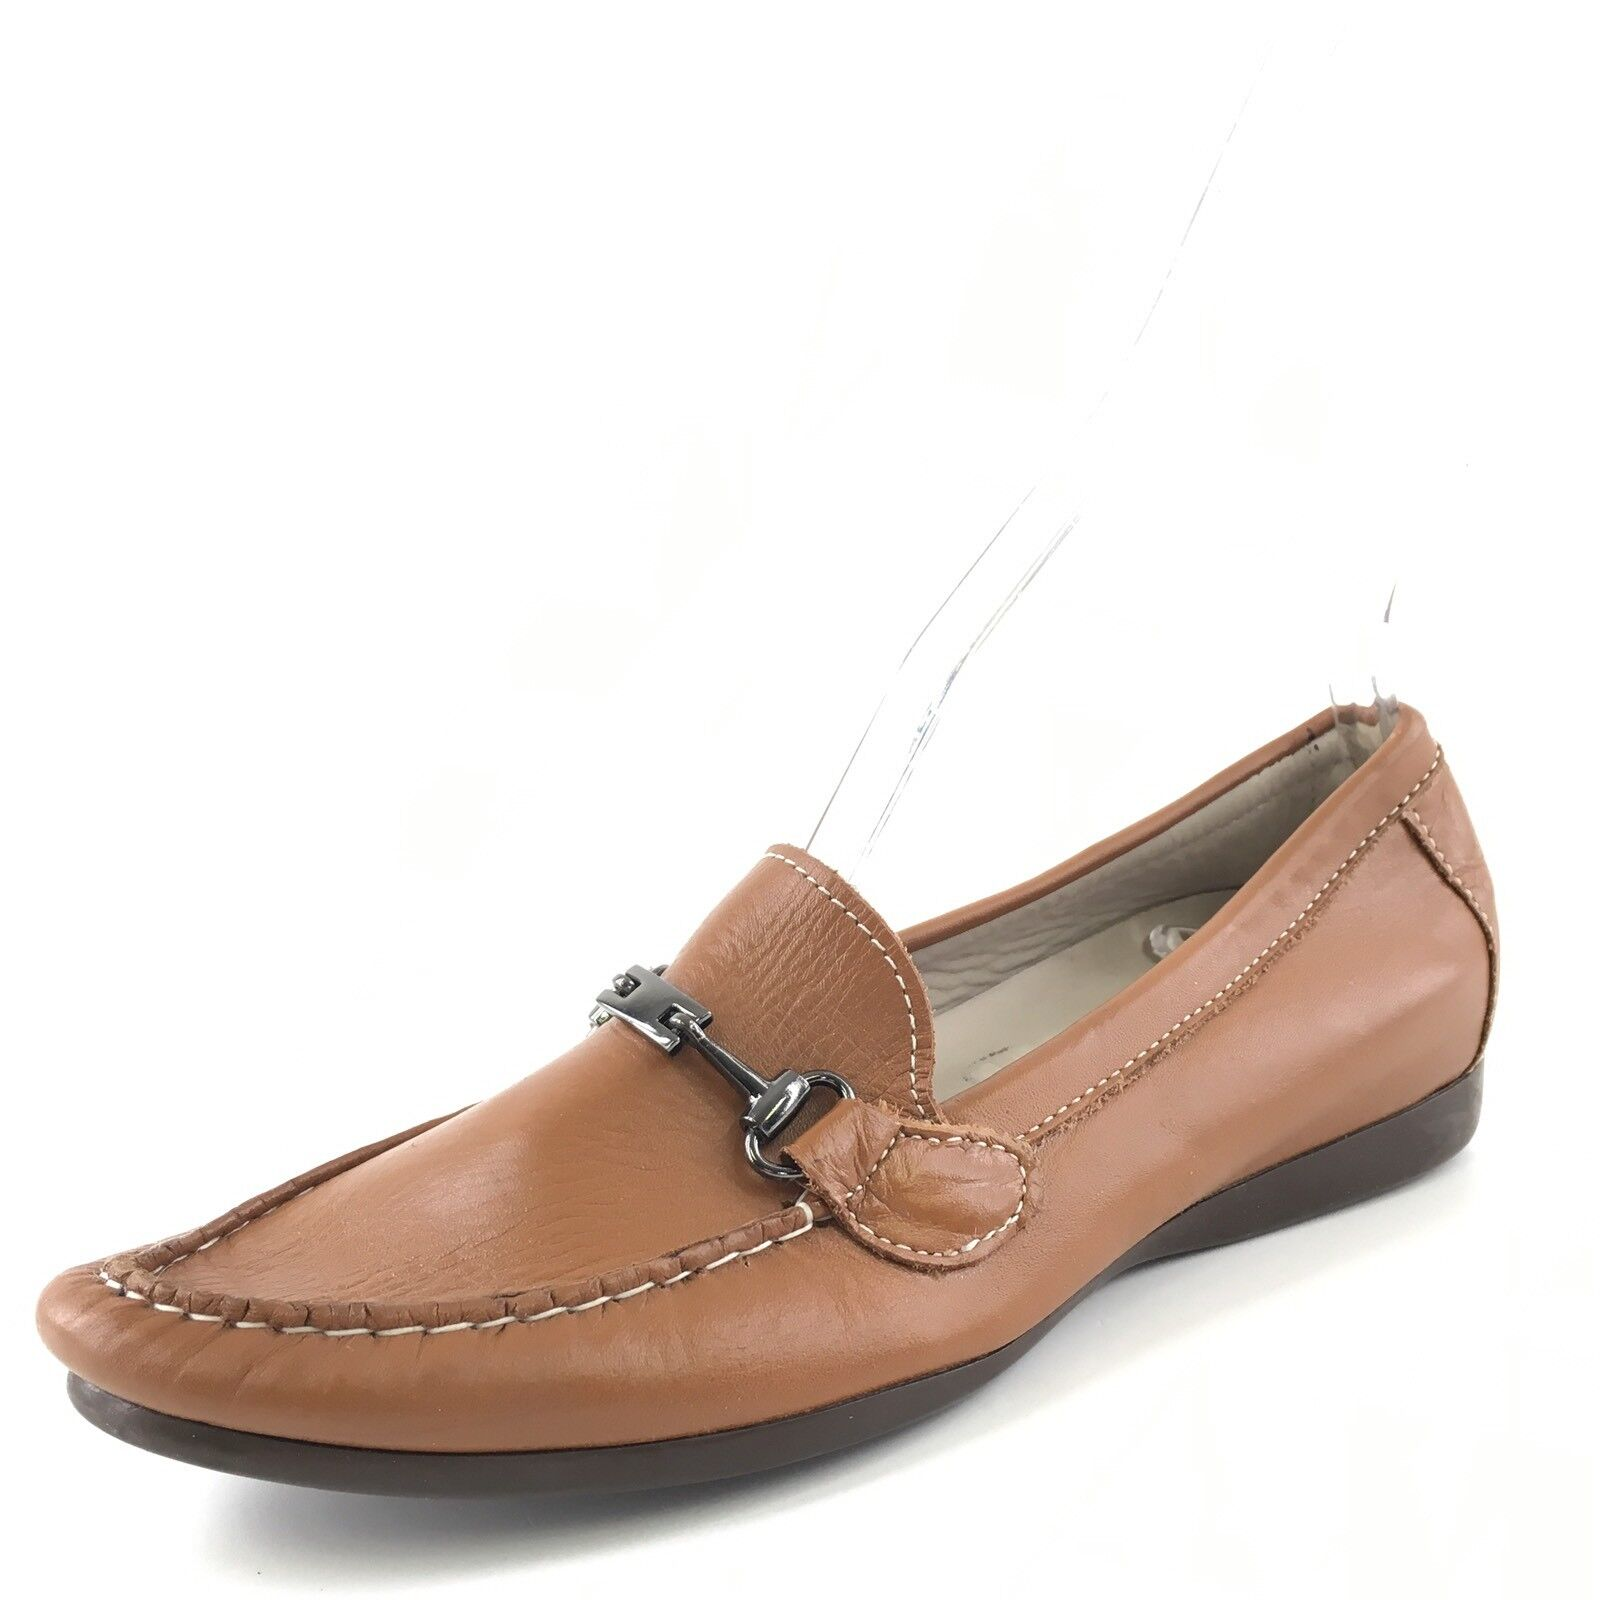 Munro American Kimi Brown Leather Leather Brown Casual Flats Comfort Loafers Women's Size 7 N* 4693ce